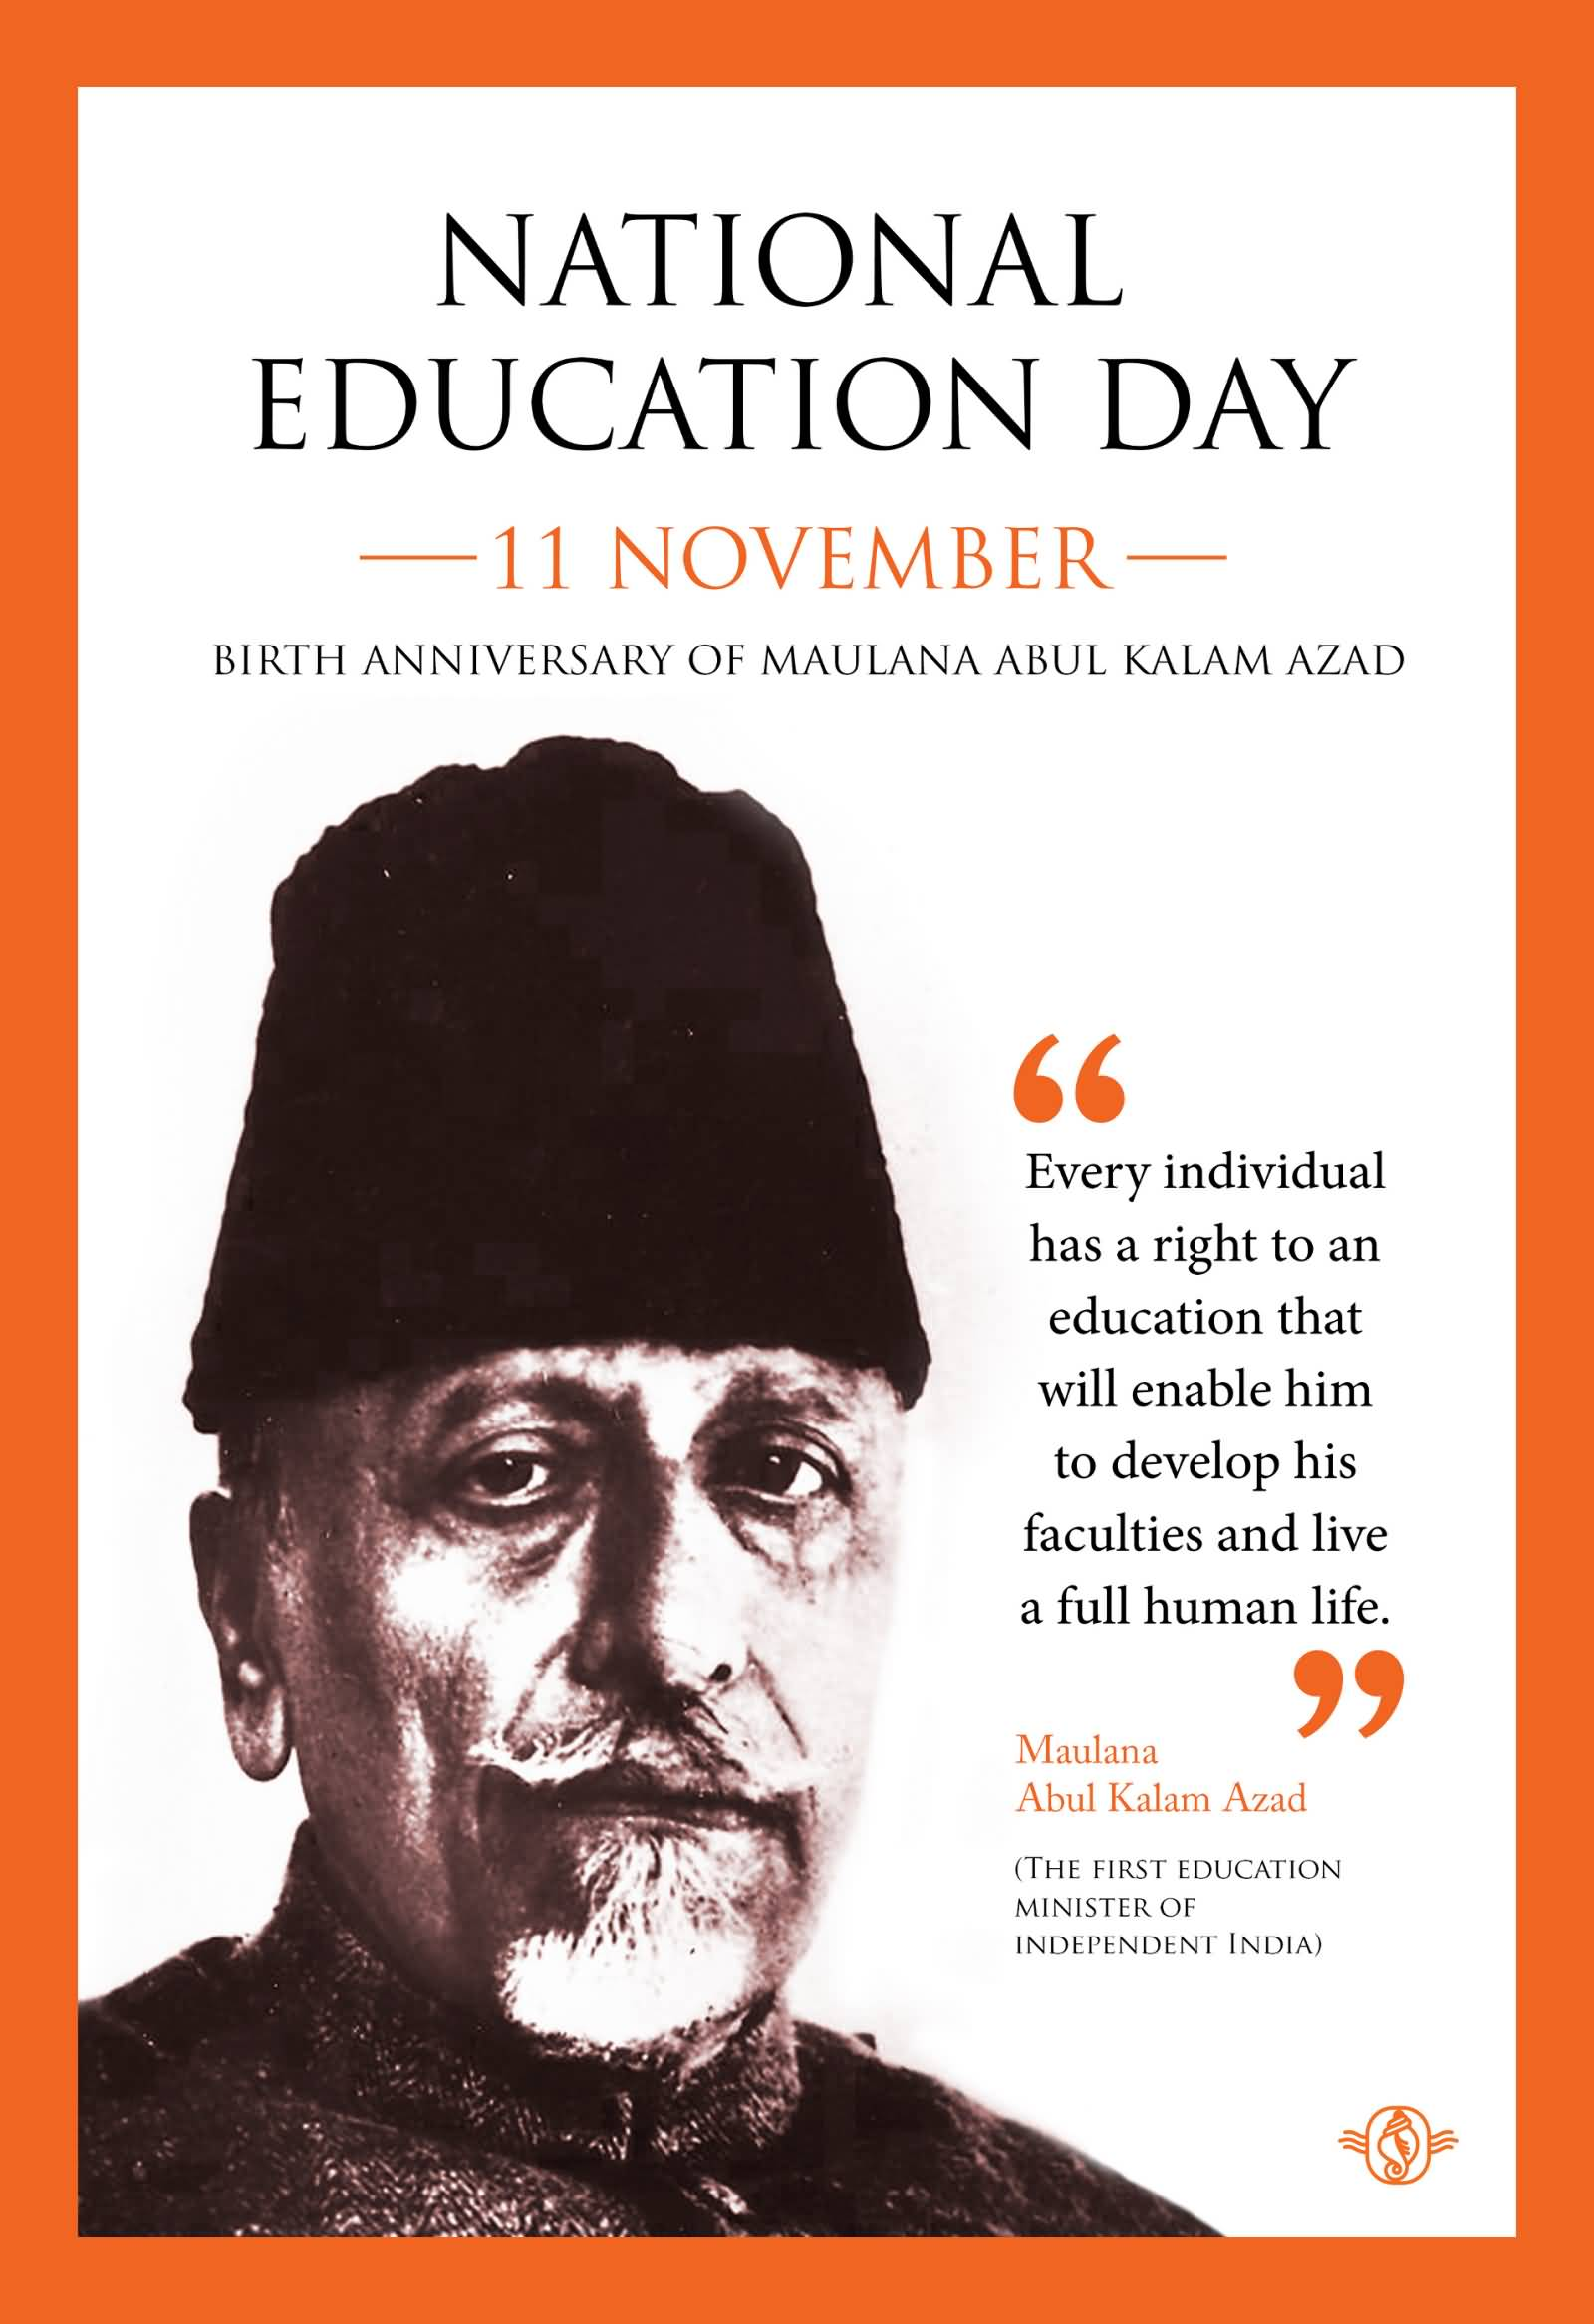 National Education Day Celebration Poster